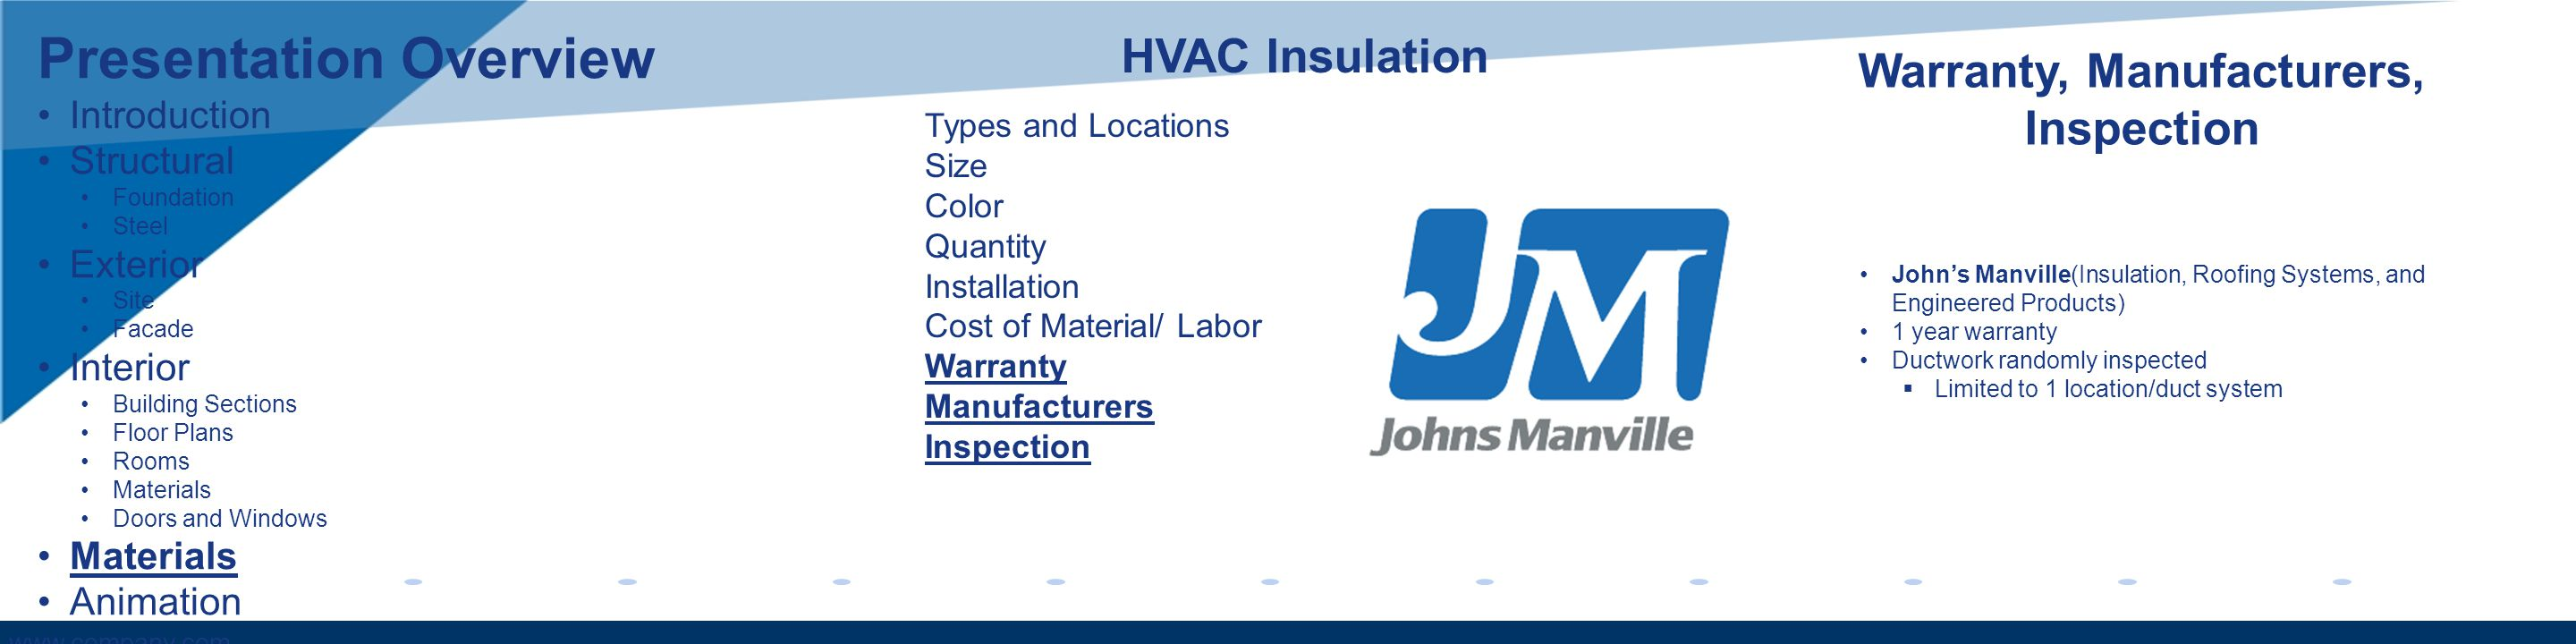 www.company.com Warranty, Manufacturers, Inspection HVAC Insulation Types and Locations Size Color Quantity Installation Cost of Material/ Labor Warranty Manufacturers Inspection Johns Manville(Insulation, Roofing Systems, and Engineered Products) 1 year warranty Ductwork randomly inspected Limited to 1 location/duct system Presentation Overview Introduction Structural Foundation Steel Exterior Site Facade Interior Building Sections Floor Plans Rooms Materials Doors and Windows Materials Animation